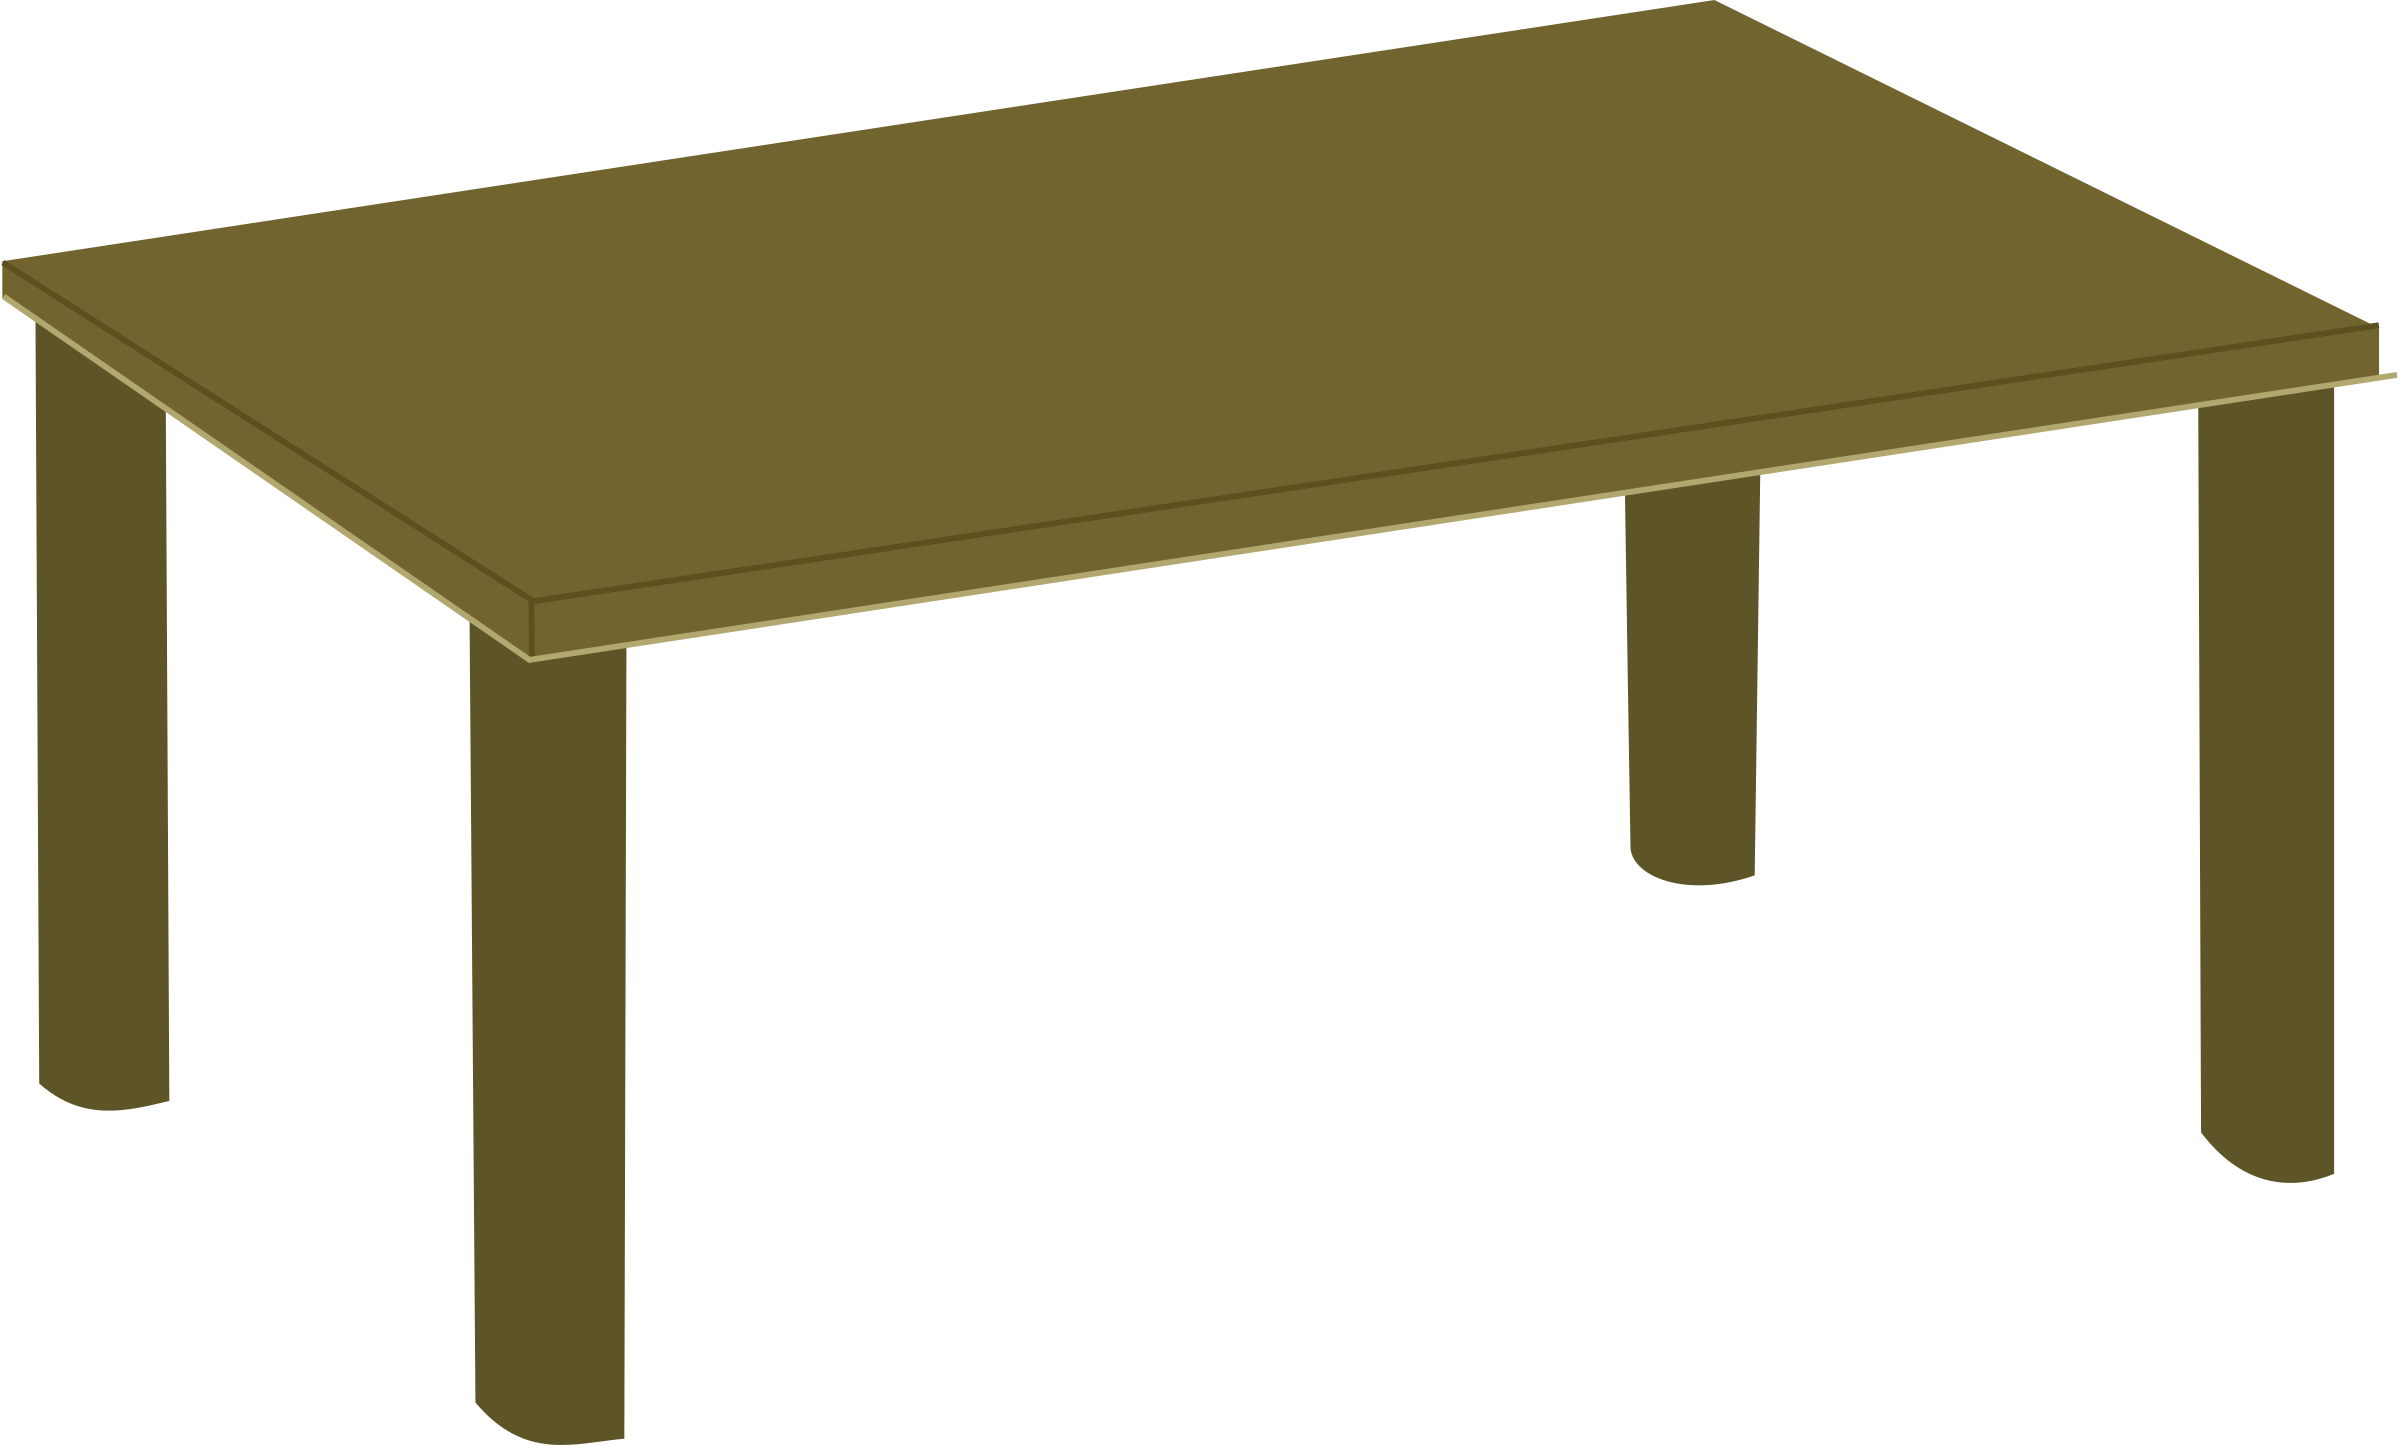 Furniture clipart small table Table Clipart Wooden table Wooden